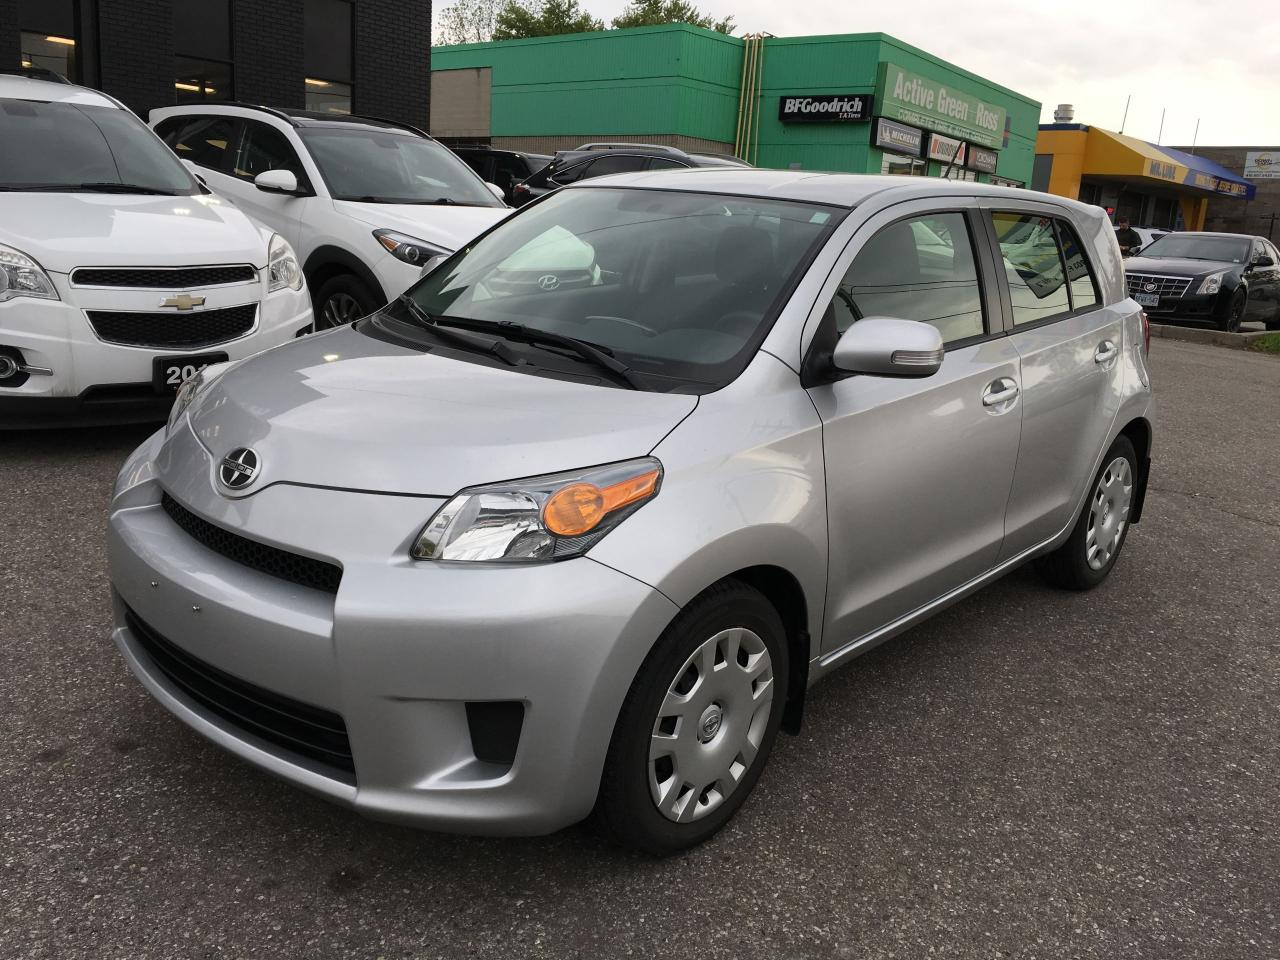 img src https images carpages ca inventory 3376536 101487826 w 1280 h 960 q 80 fit max s d5a9b1f80e9ca7eb446485c3bc8ec8be alt 2013 scion xd  [ 1280 x 960 Pixel ]